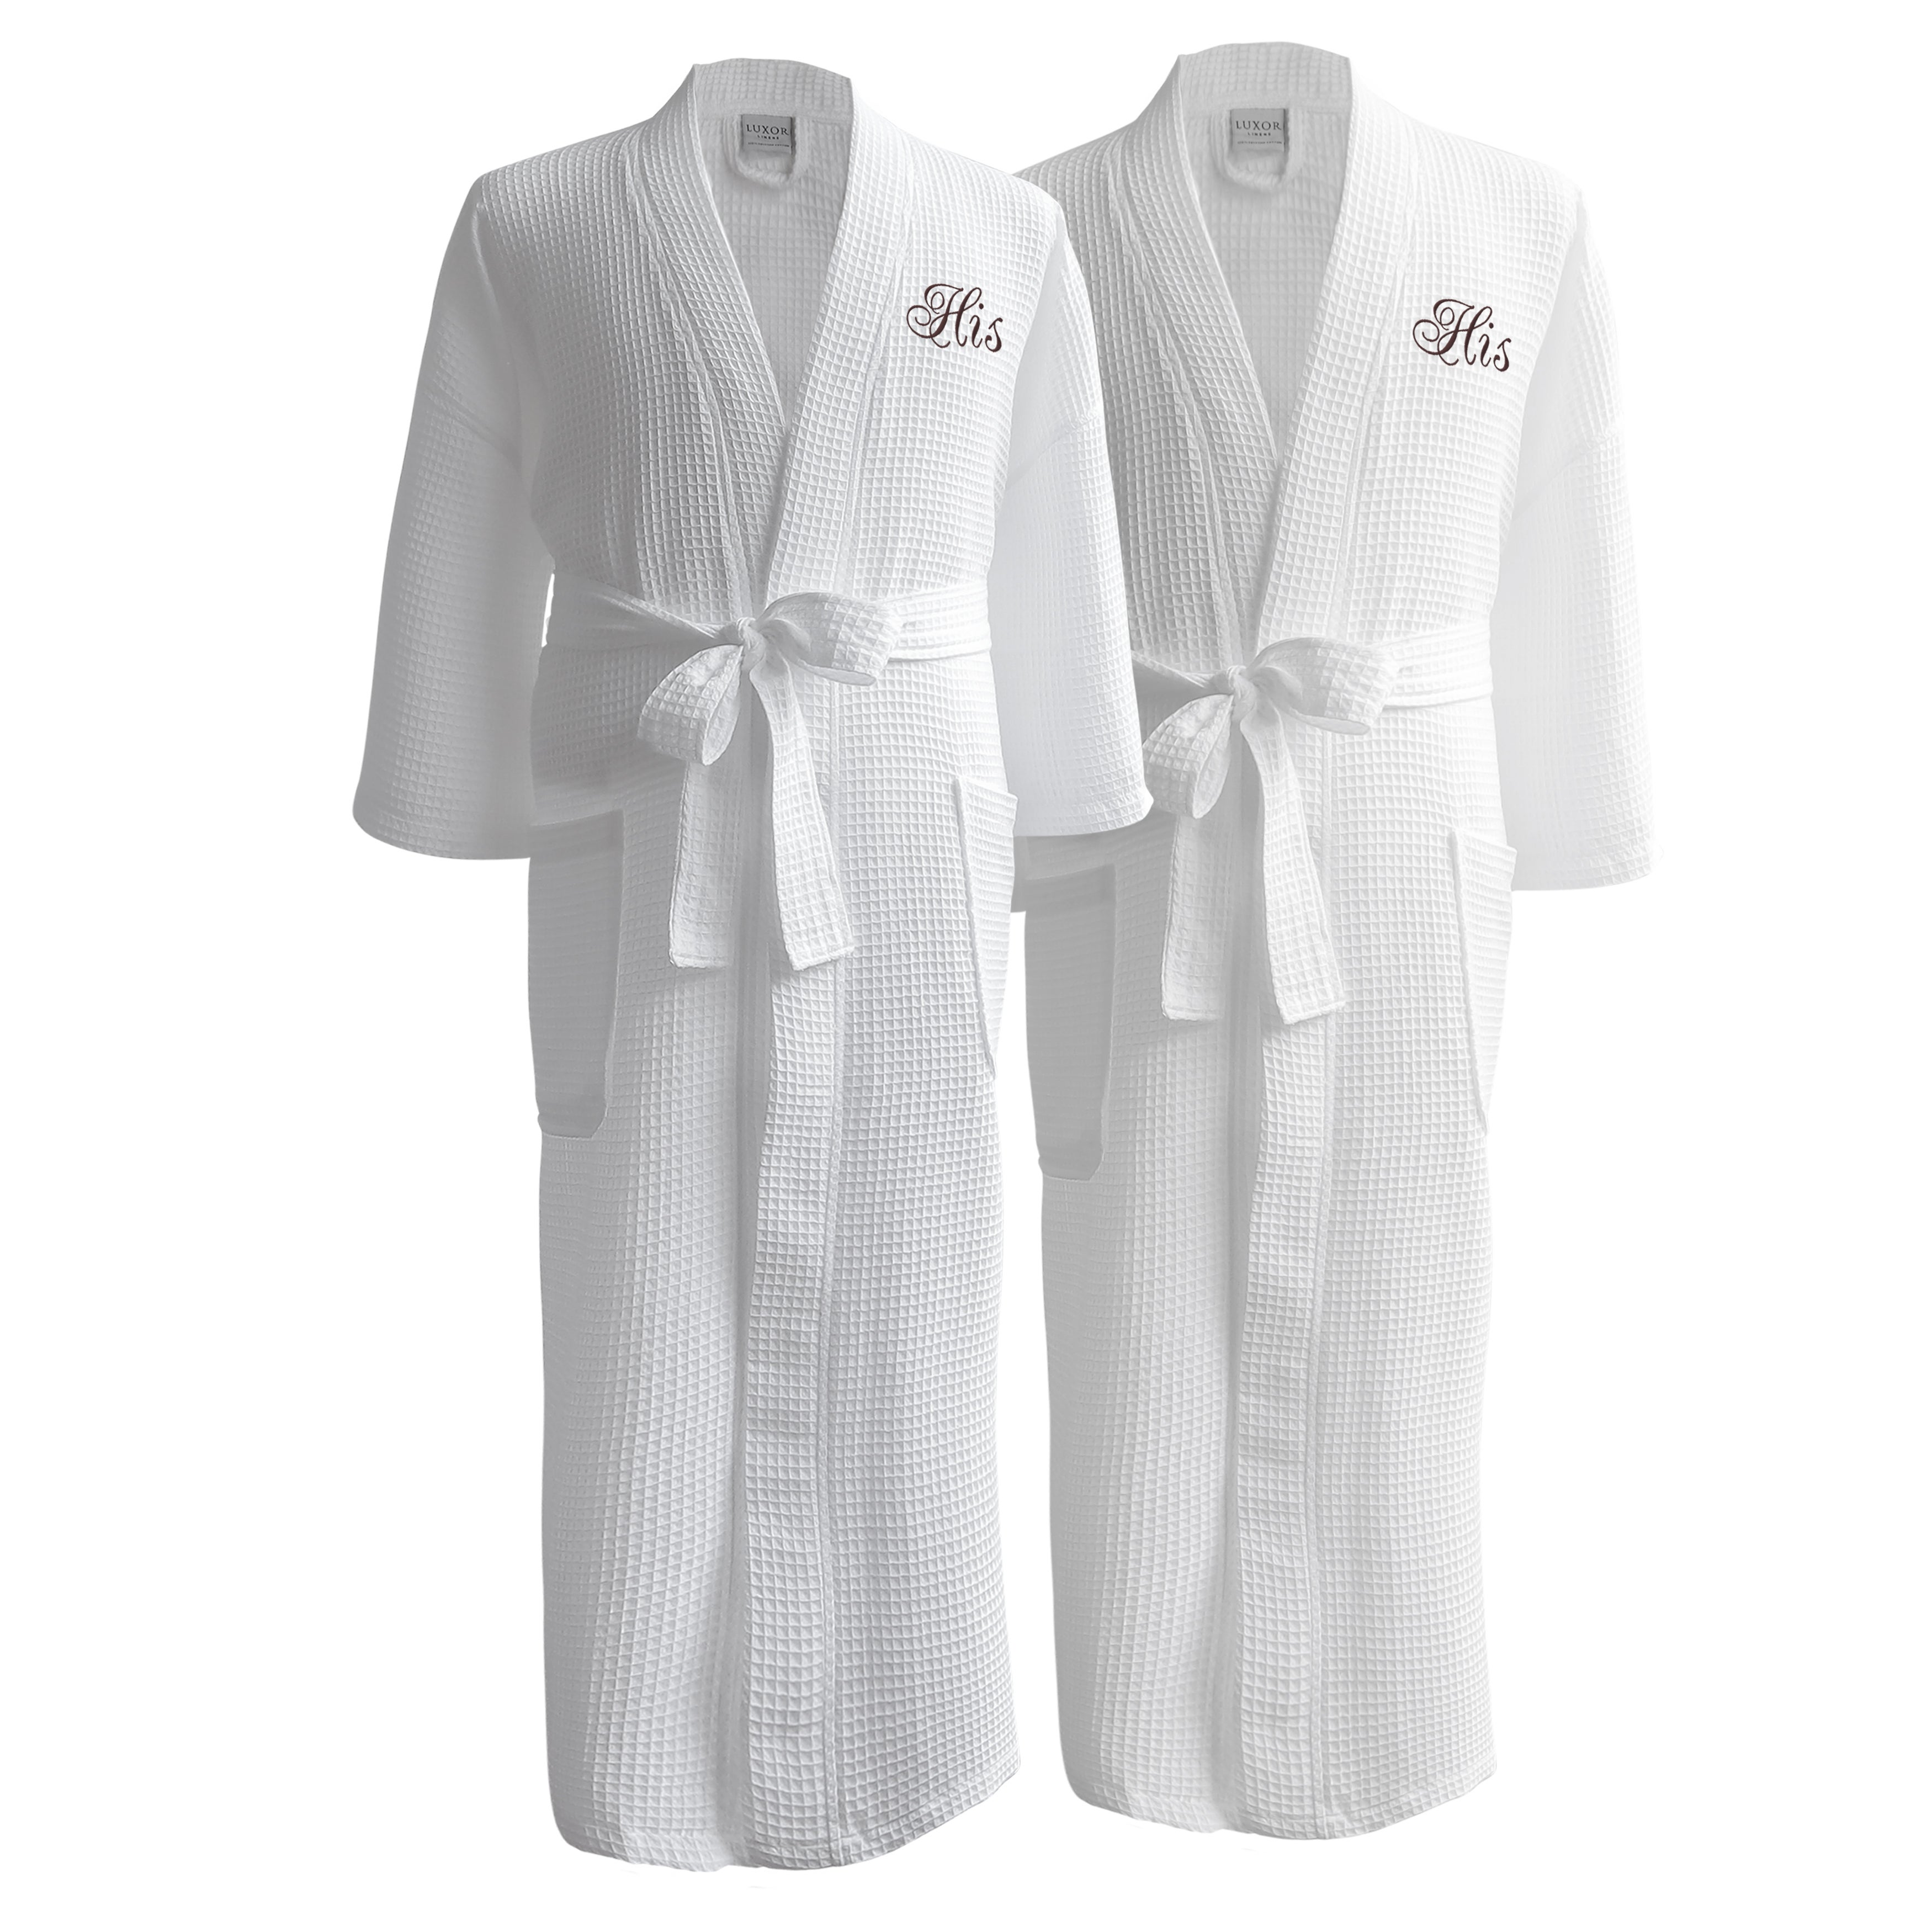 Conrad Egyptian Cotton His and His Waffle Spa Robe Set (Gift Packaging). by Luxor  Linens 027250196